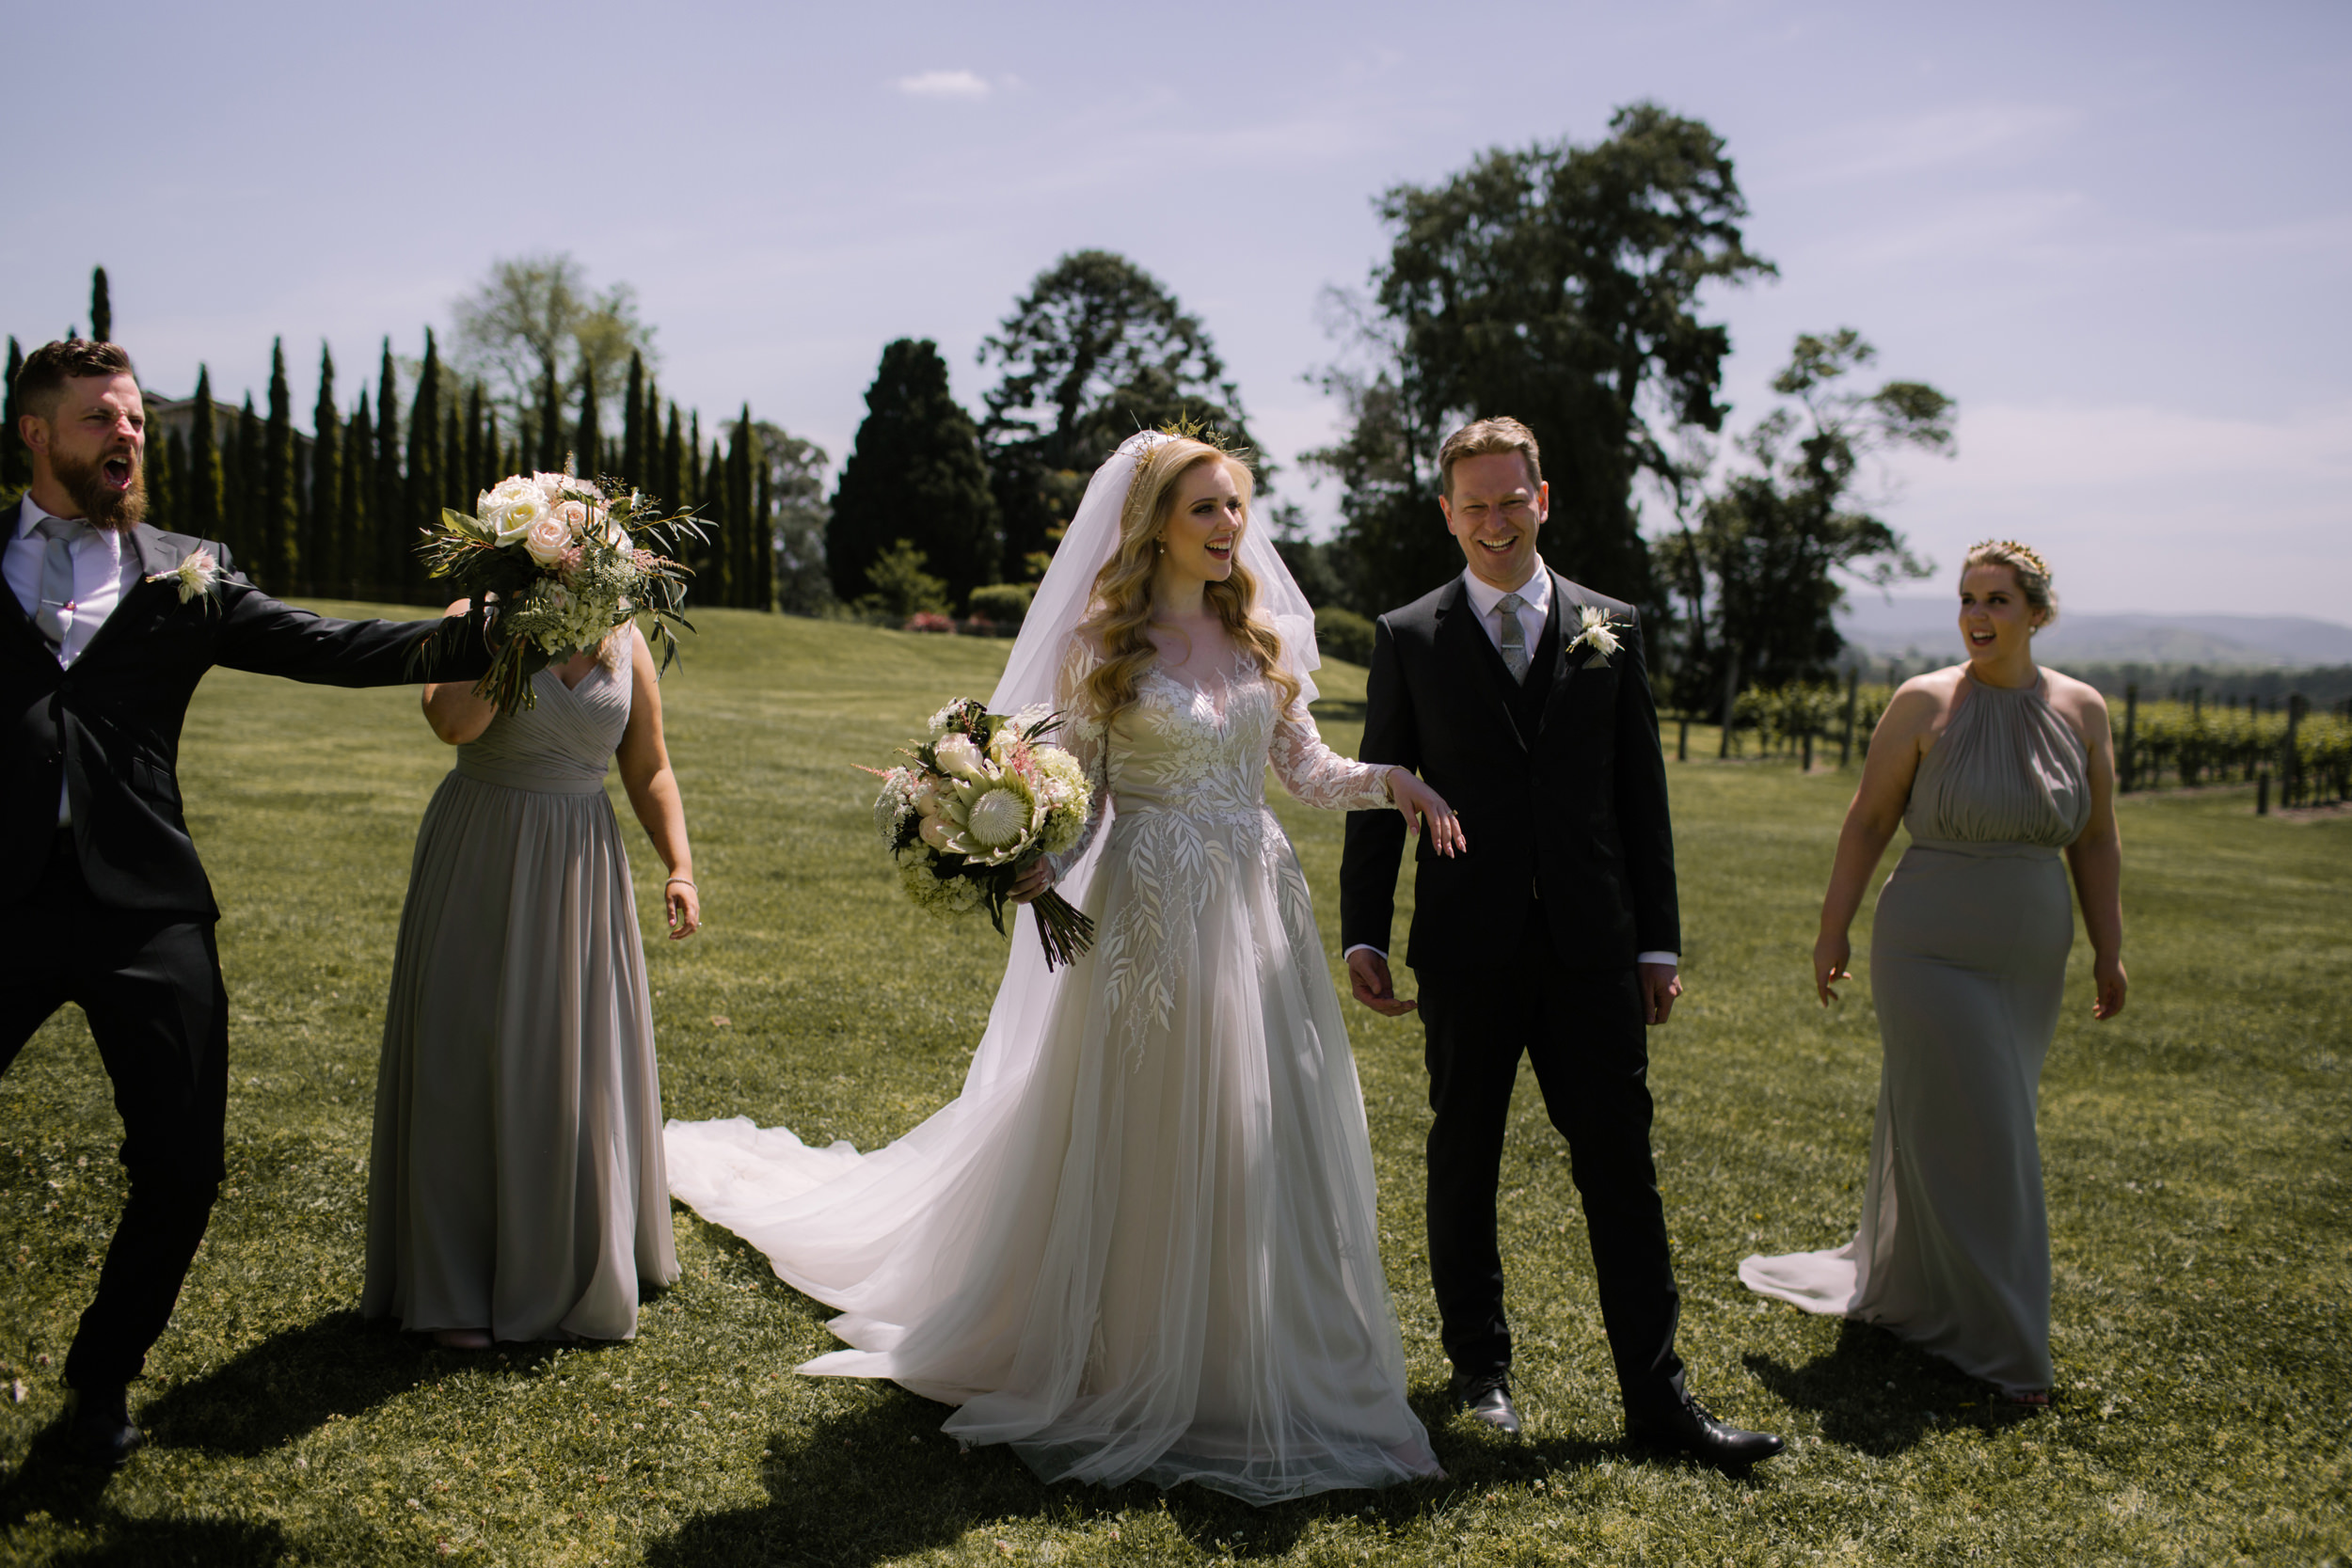 I-Got-You-Babe-&.Co.-Stones-of-the-Yarra-Valley-Wedding-Beverly-Ross0114.JPG